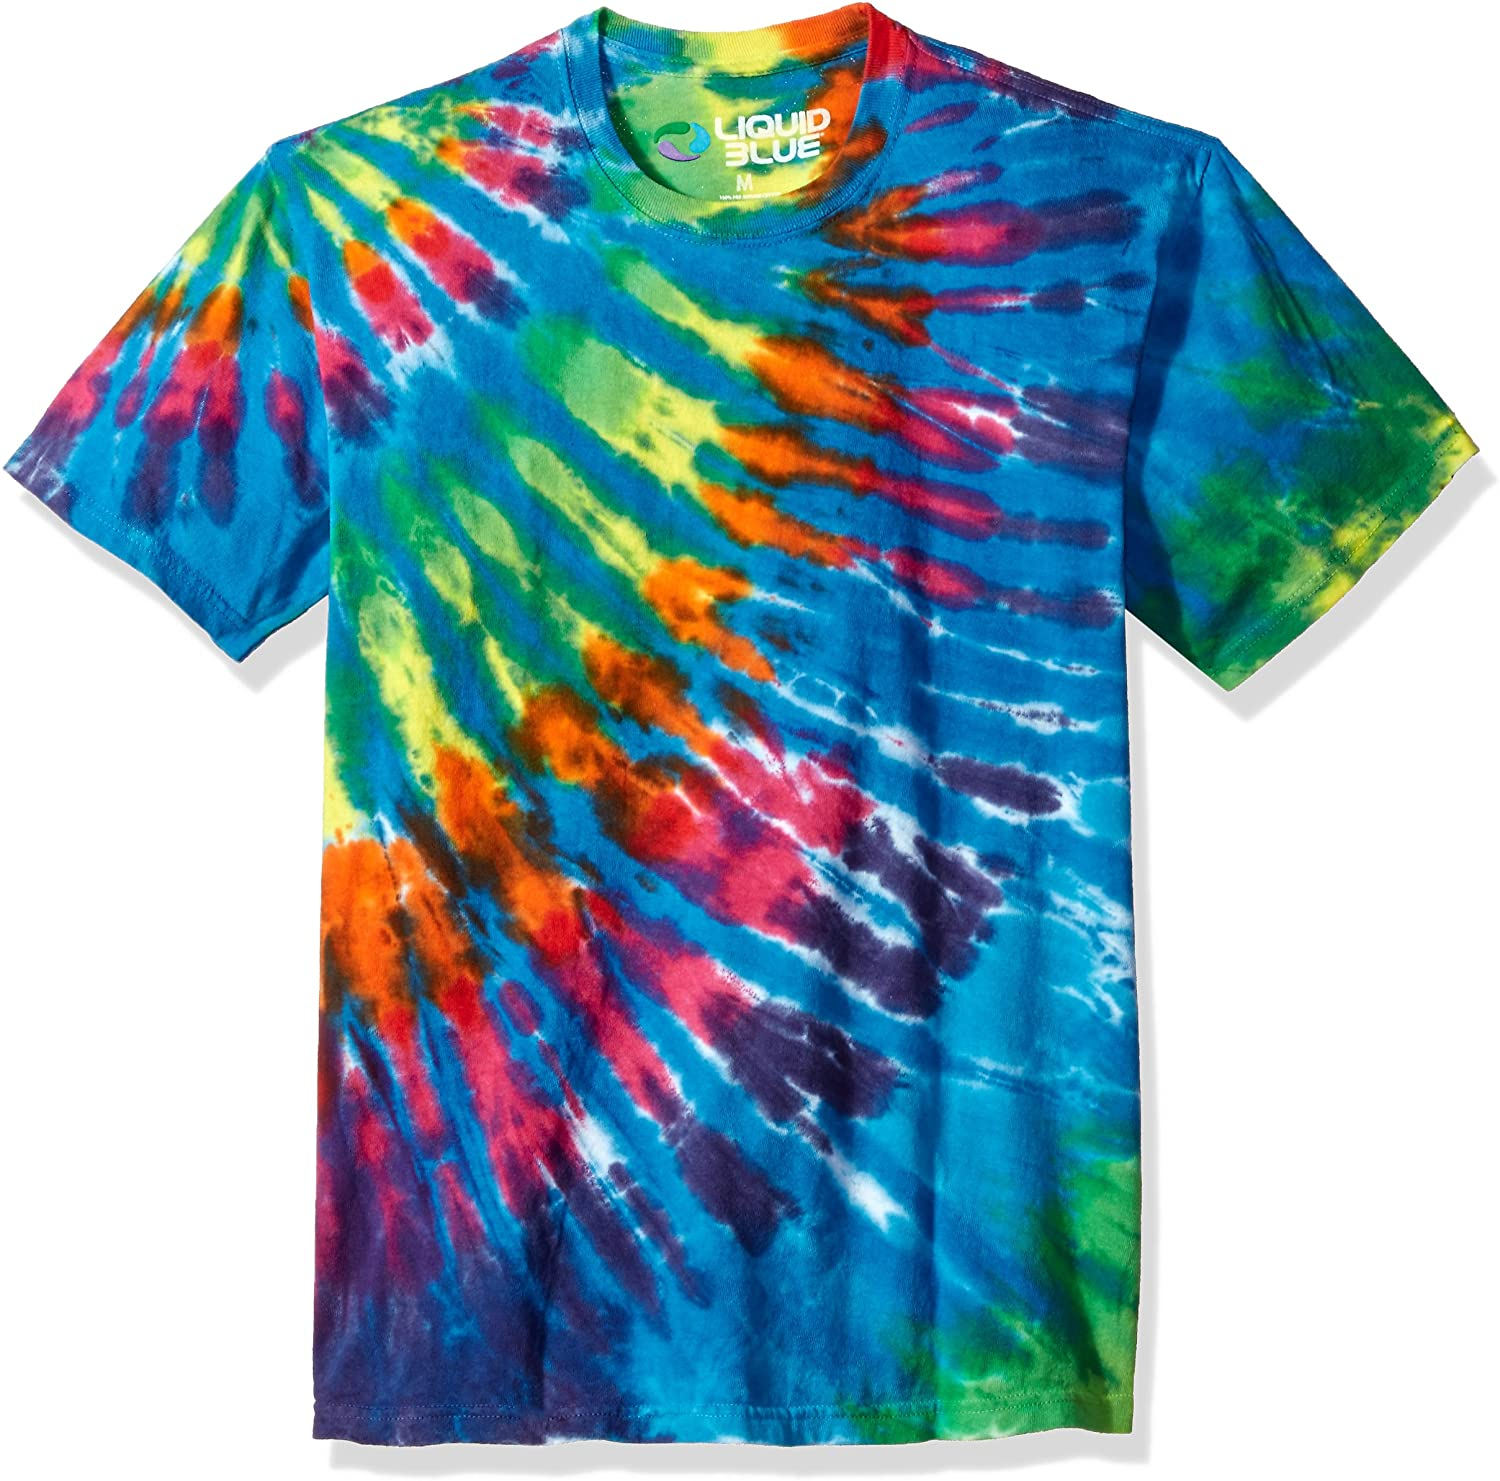 Liquid Blue Rainbow Blue Streak Tie Dye Short Sleeve T-Shirt